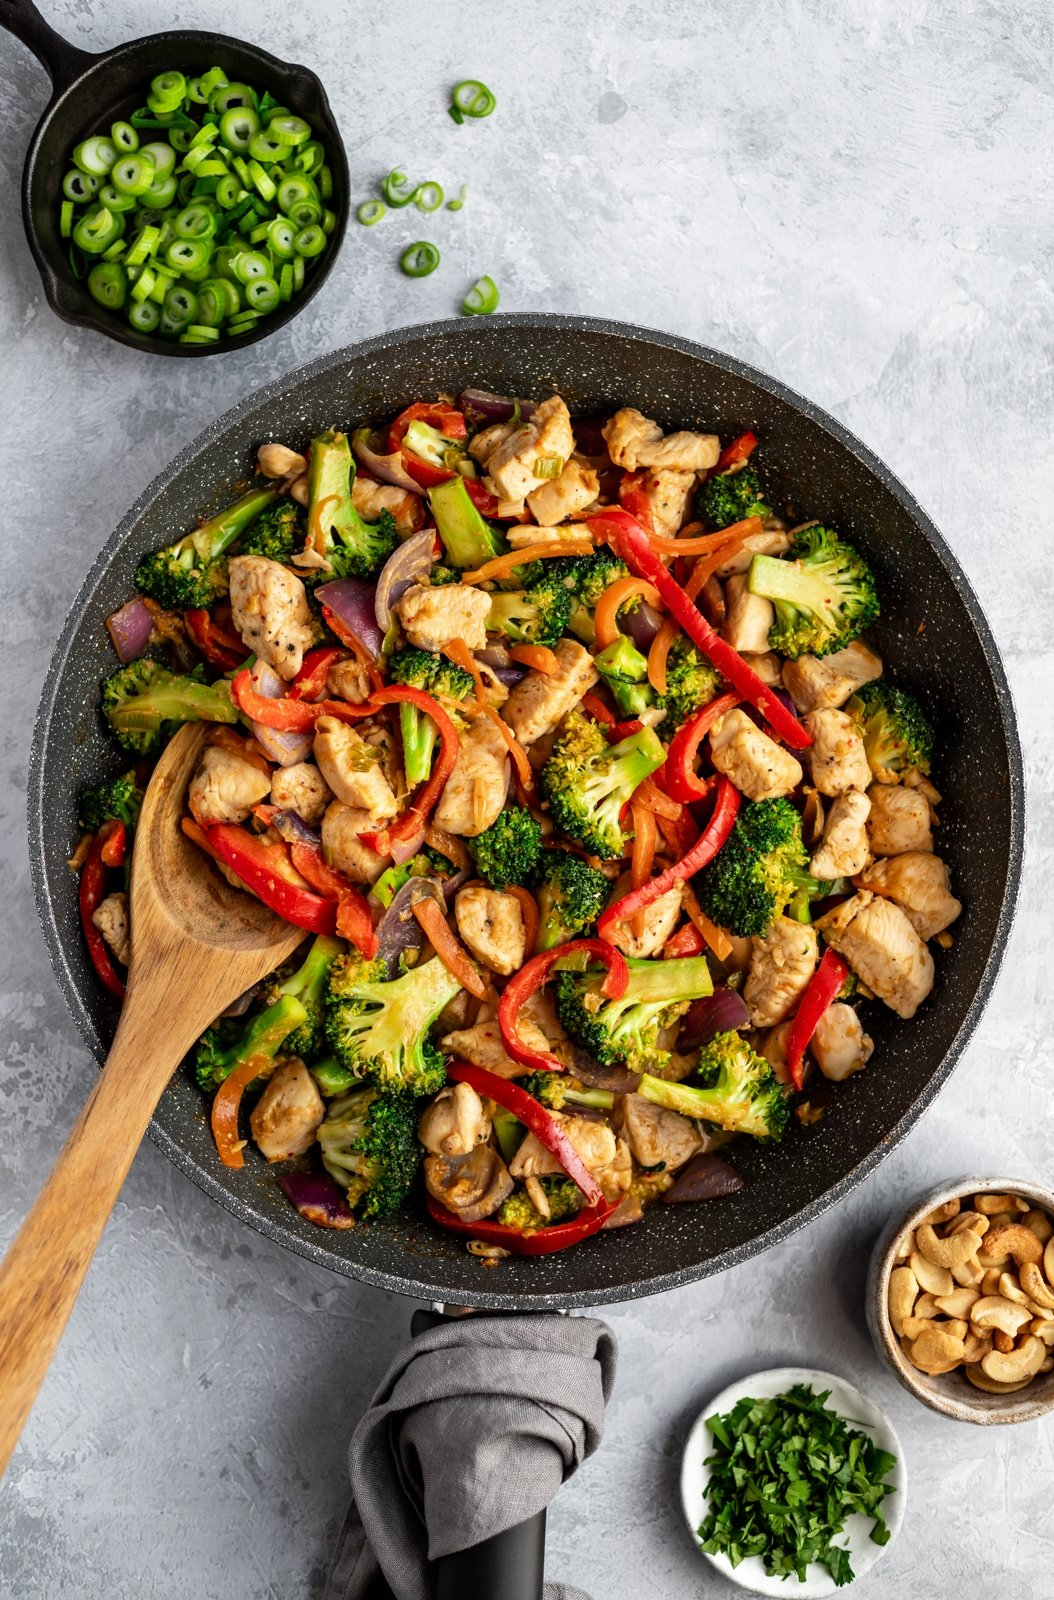 cashew chicken stir fry recipe in a wok pan